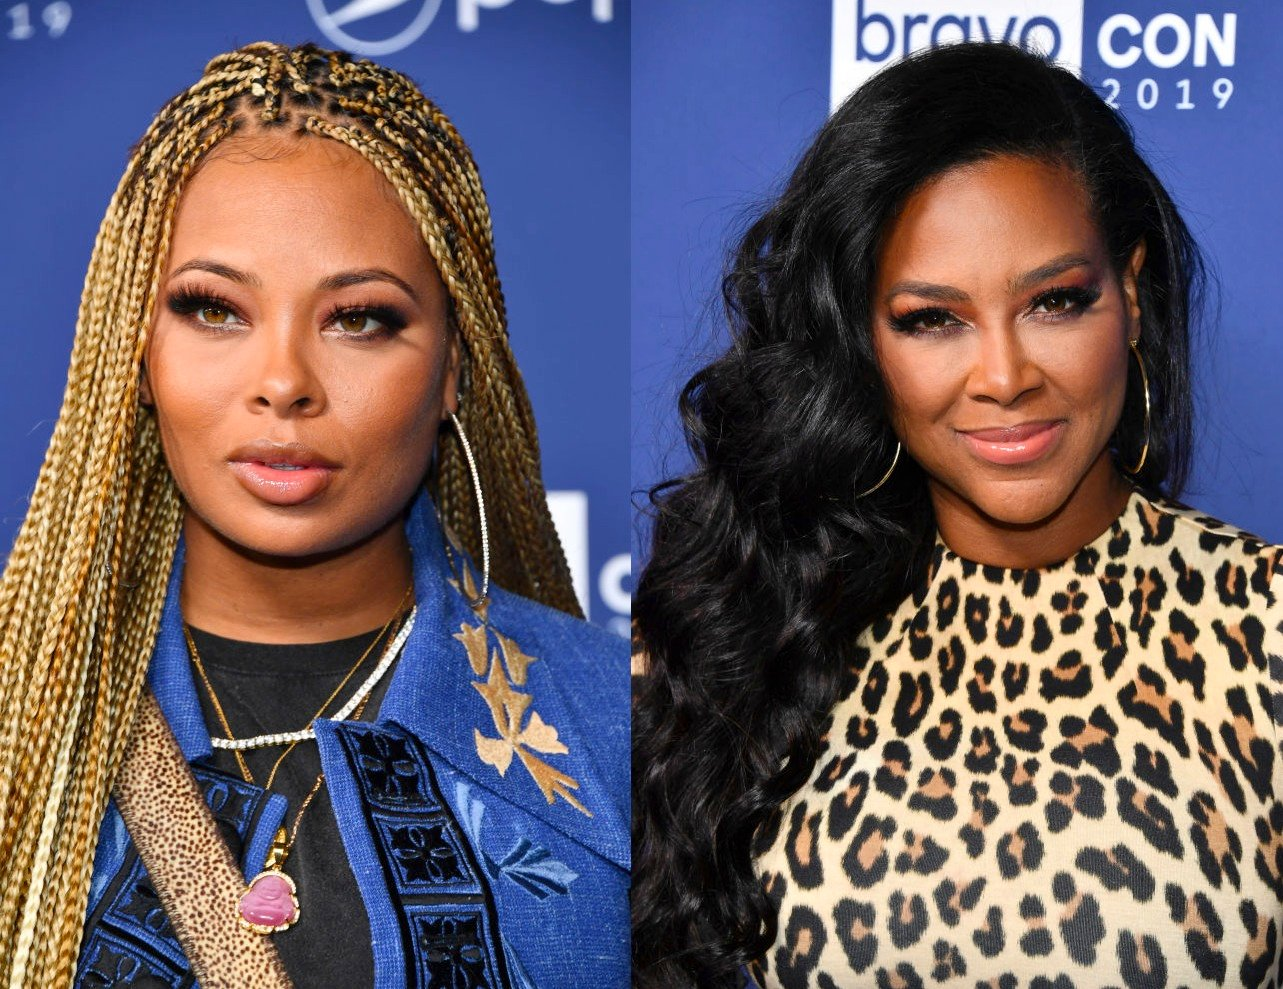 Eva Marcille Celebrates The Birthday Of Her Beautiful Baby Boy, Maverick – See The Celebration Video Featuring Kenya Moore's Baby Girl, Brookie!